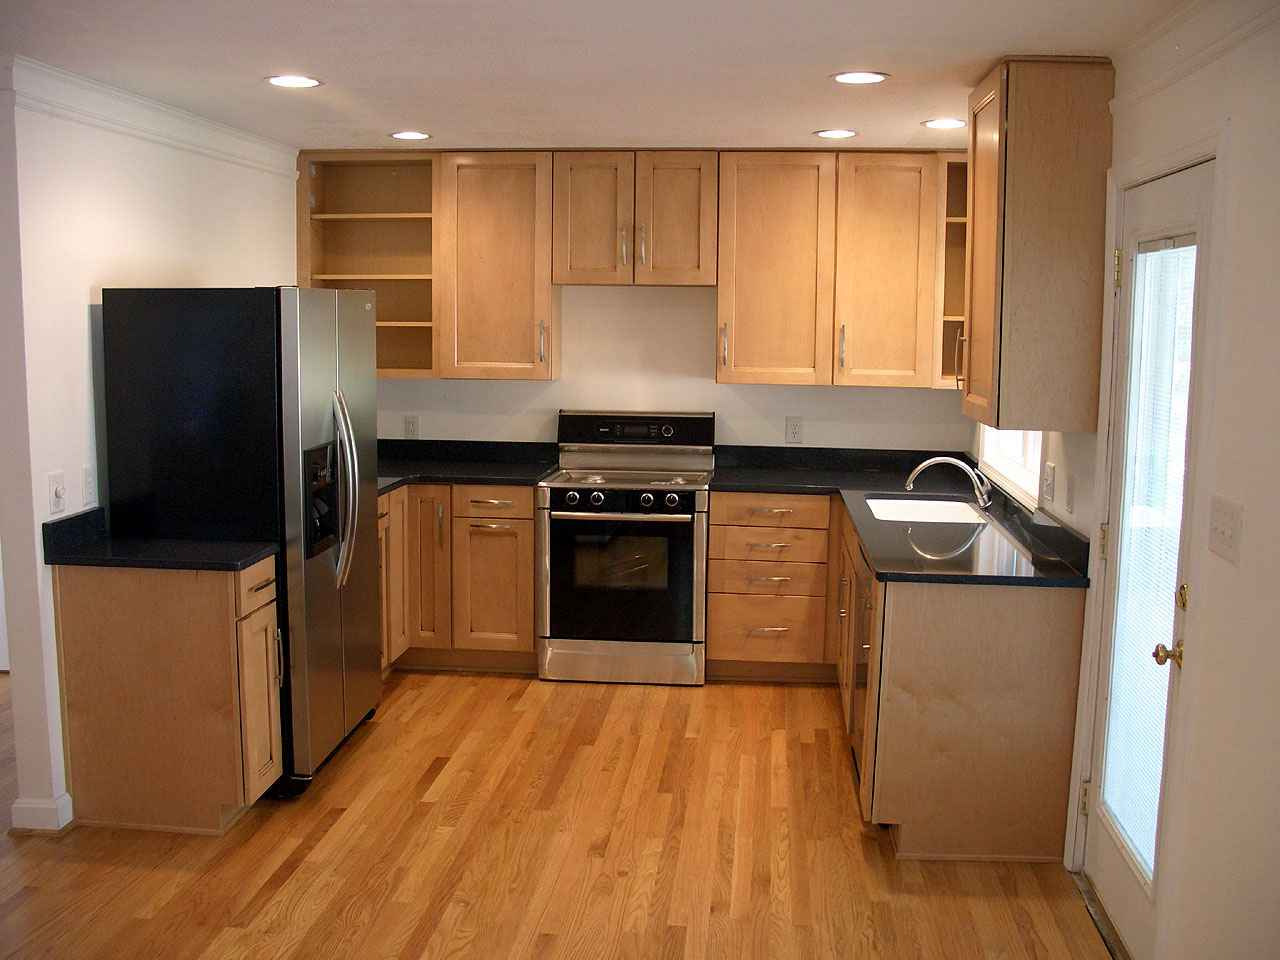 Cheap cabinets for kitchens shopping tips for Wood cabinets